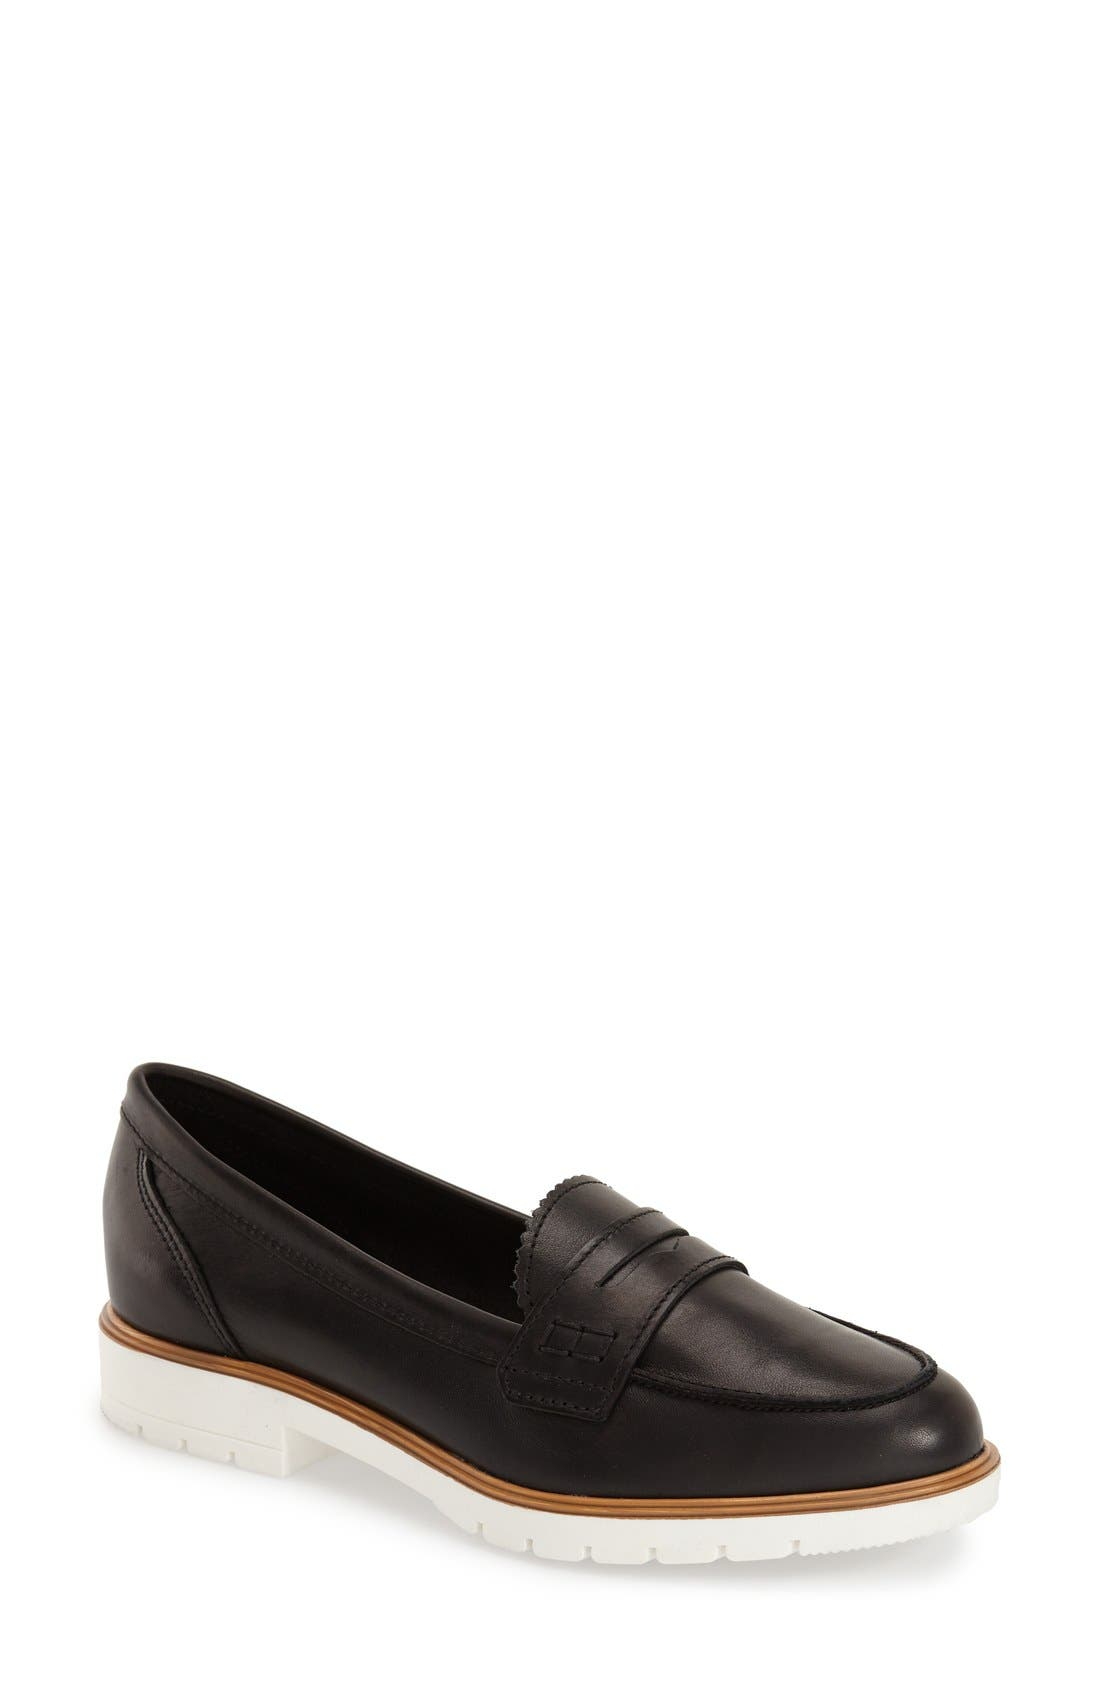 Alternate Image 1 Selected - Dune London 'Gleat' Loafer (Women)